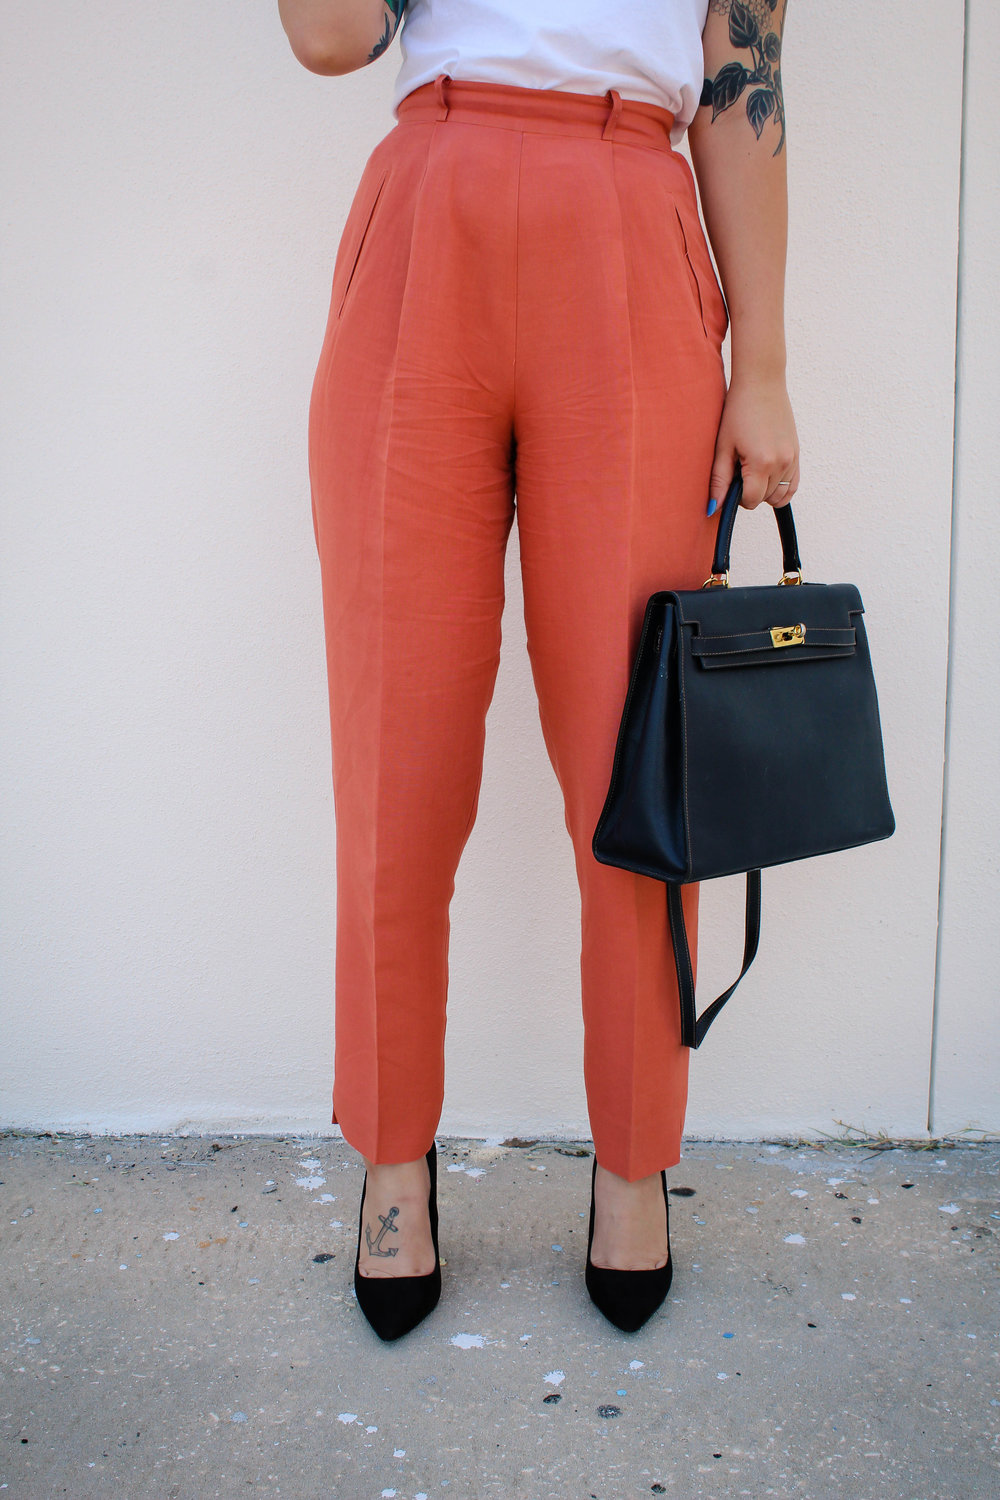 howtostyletrousers-10.jpg